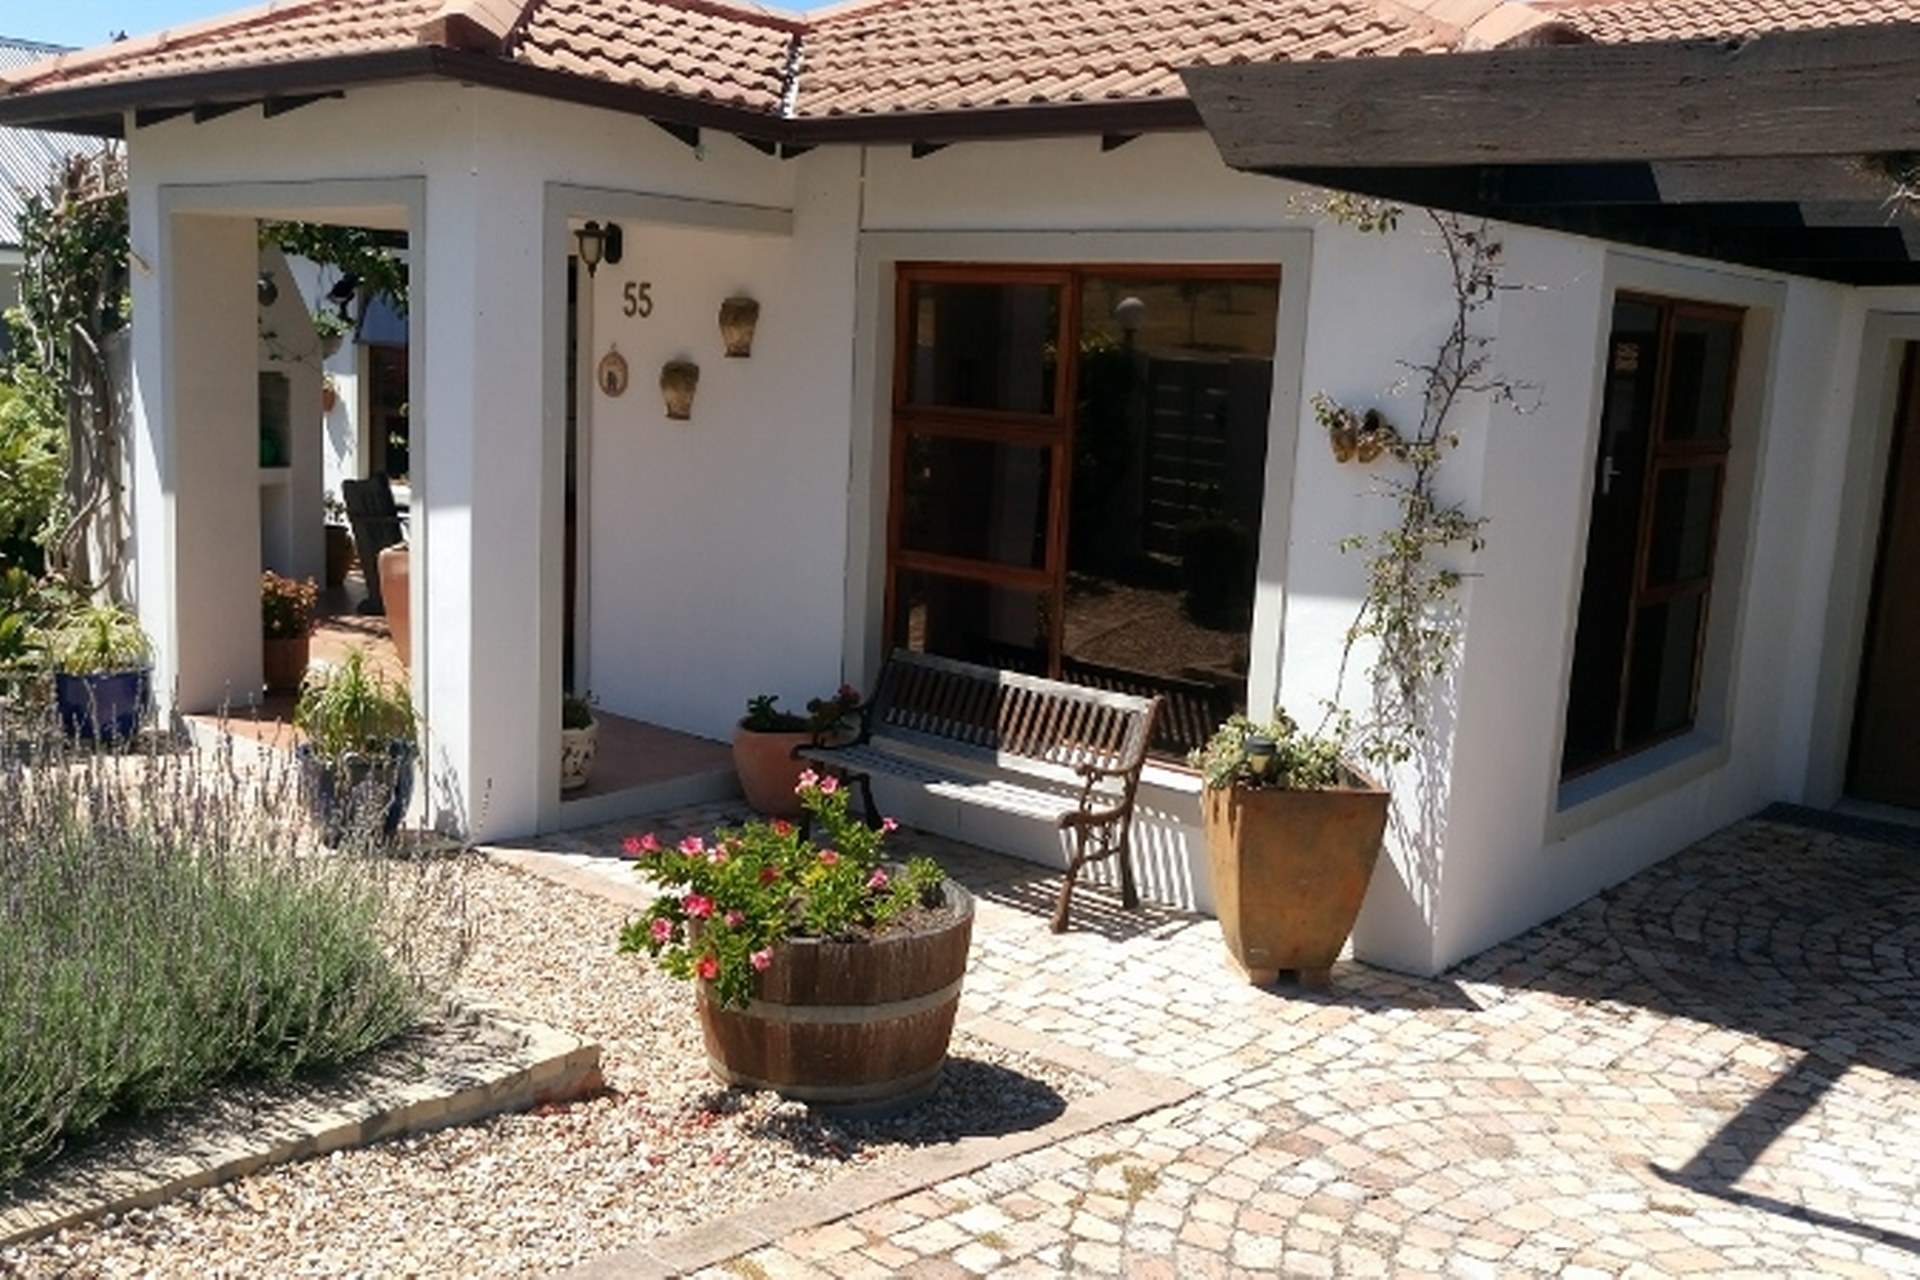 3 Bedroom house with separate flatlet